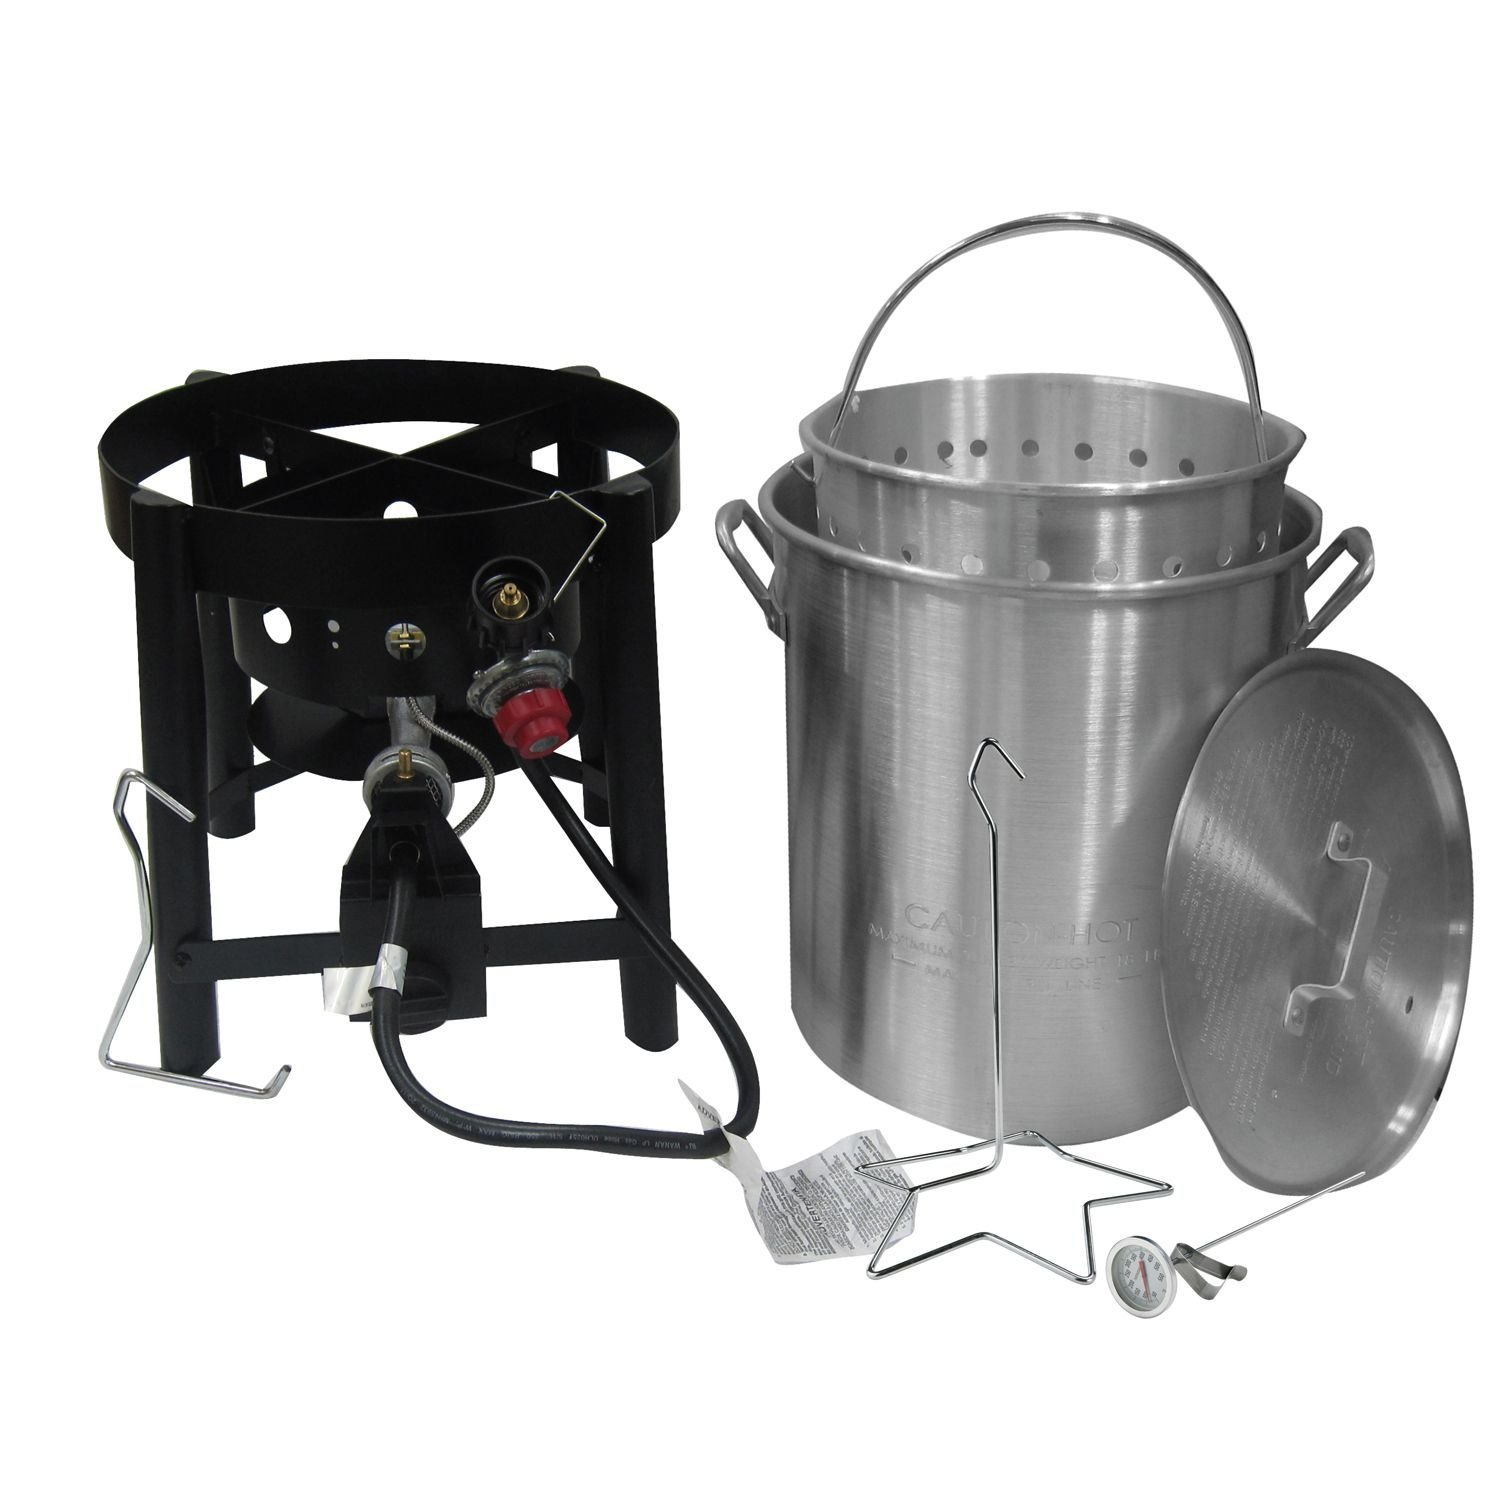 BackYard Classic 36 Quart Turkey Fryer